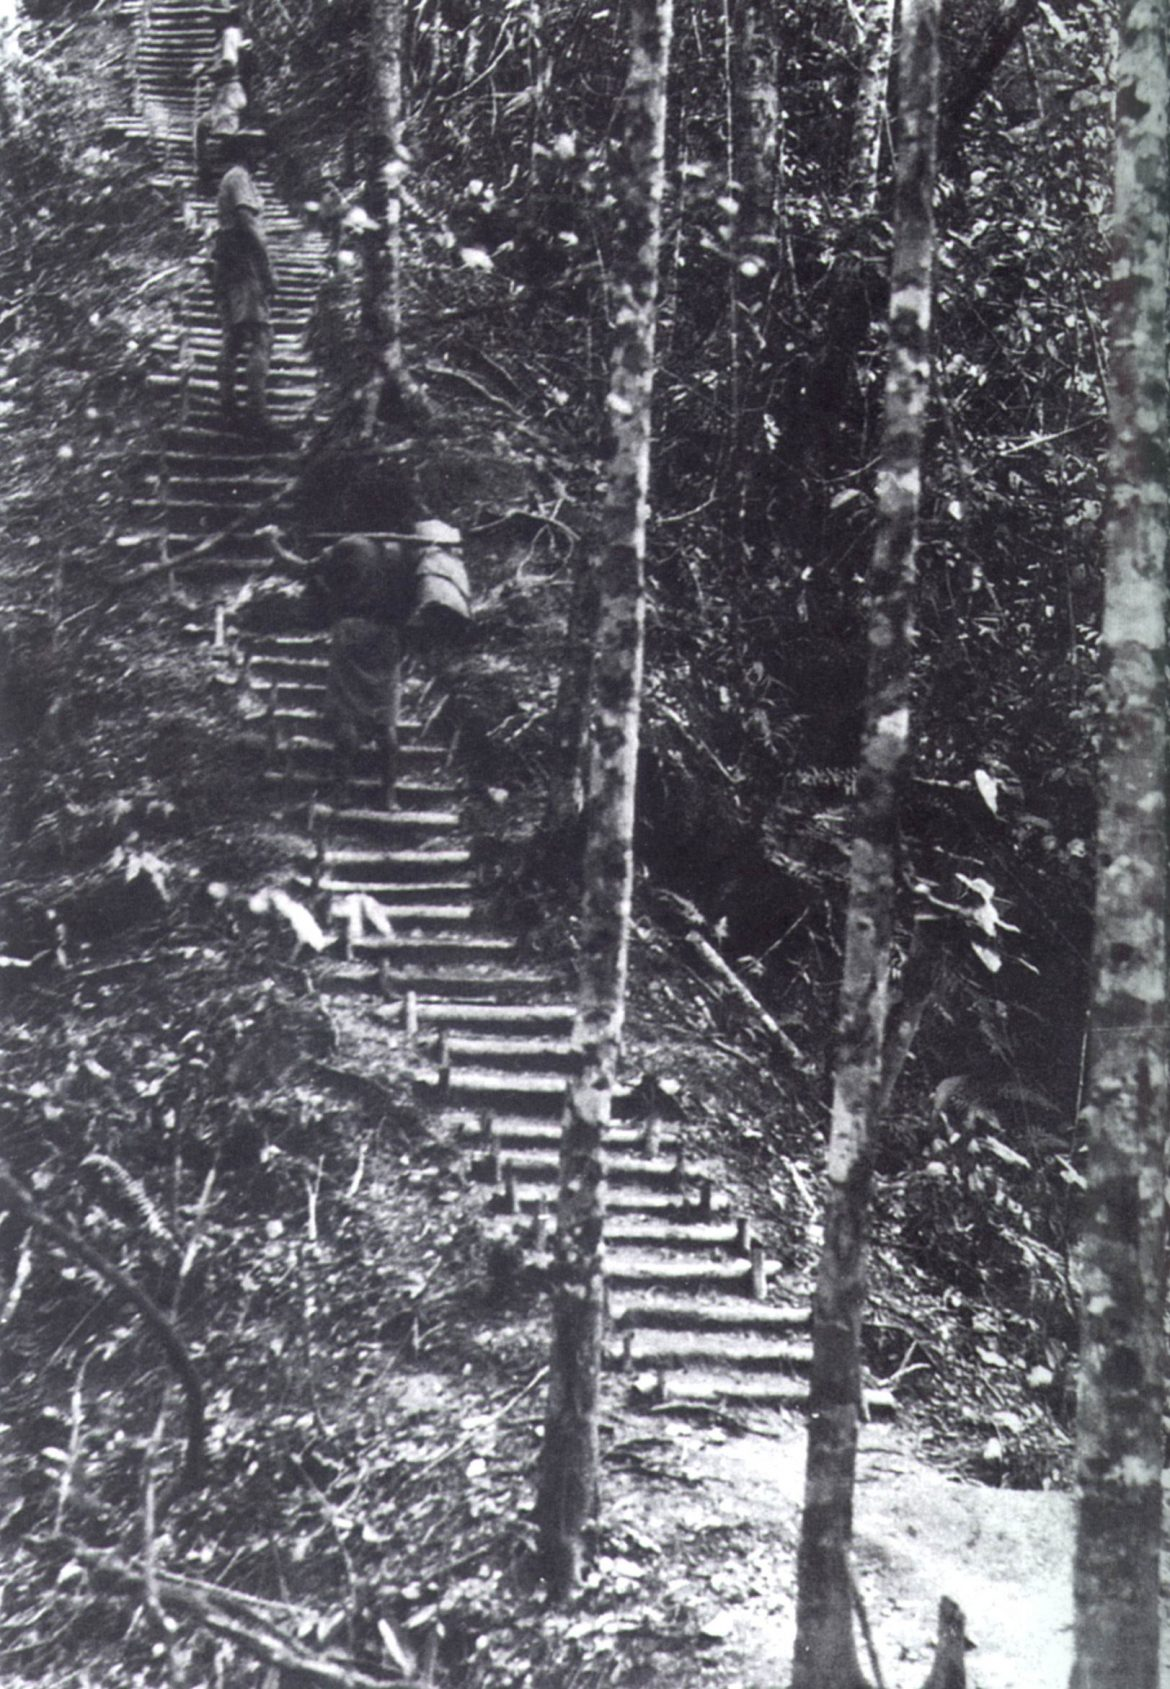 Golden-Stairs-New-Guinea.jpg